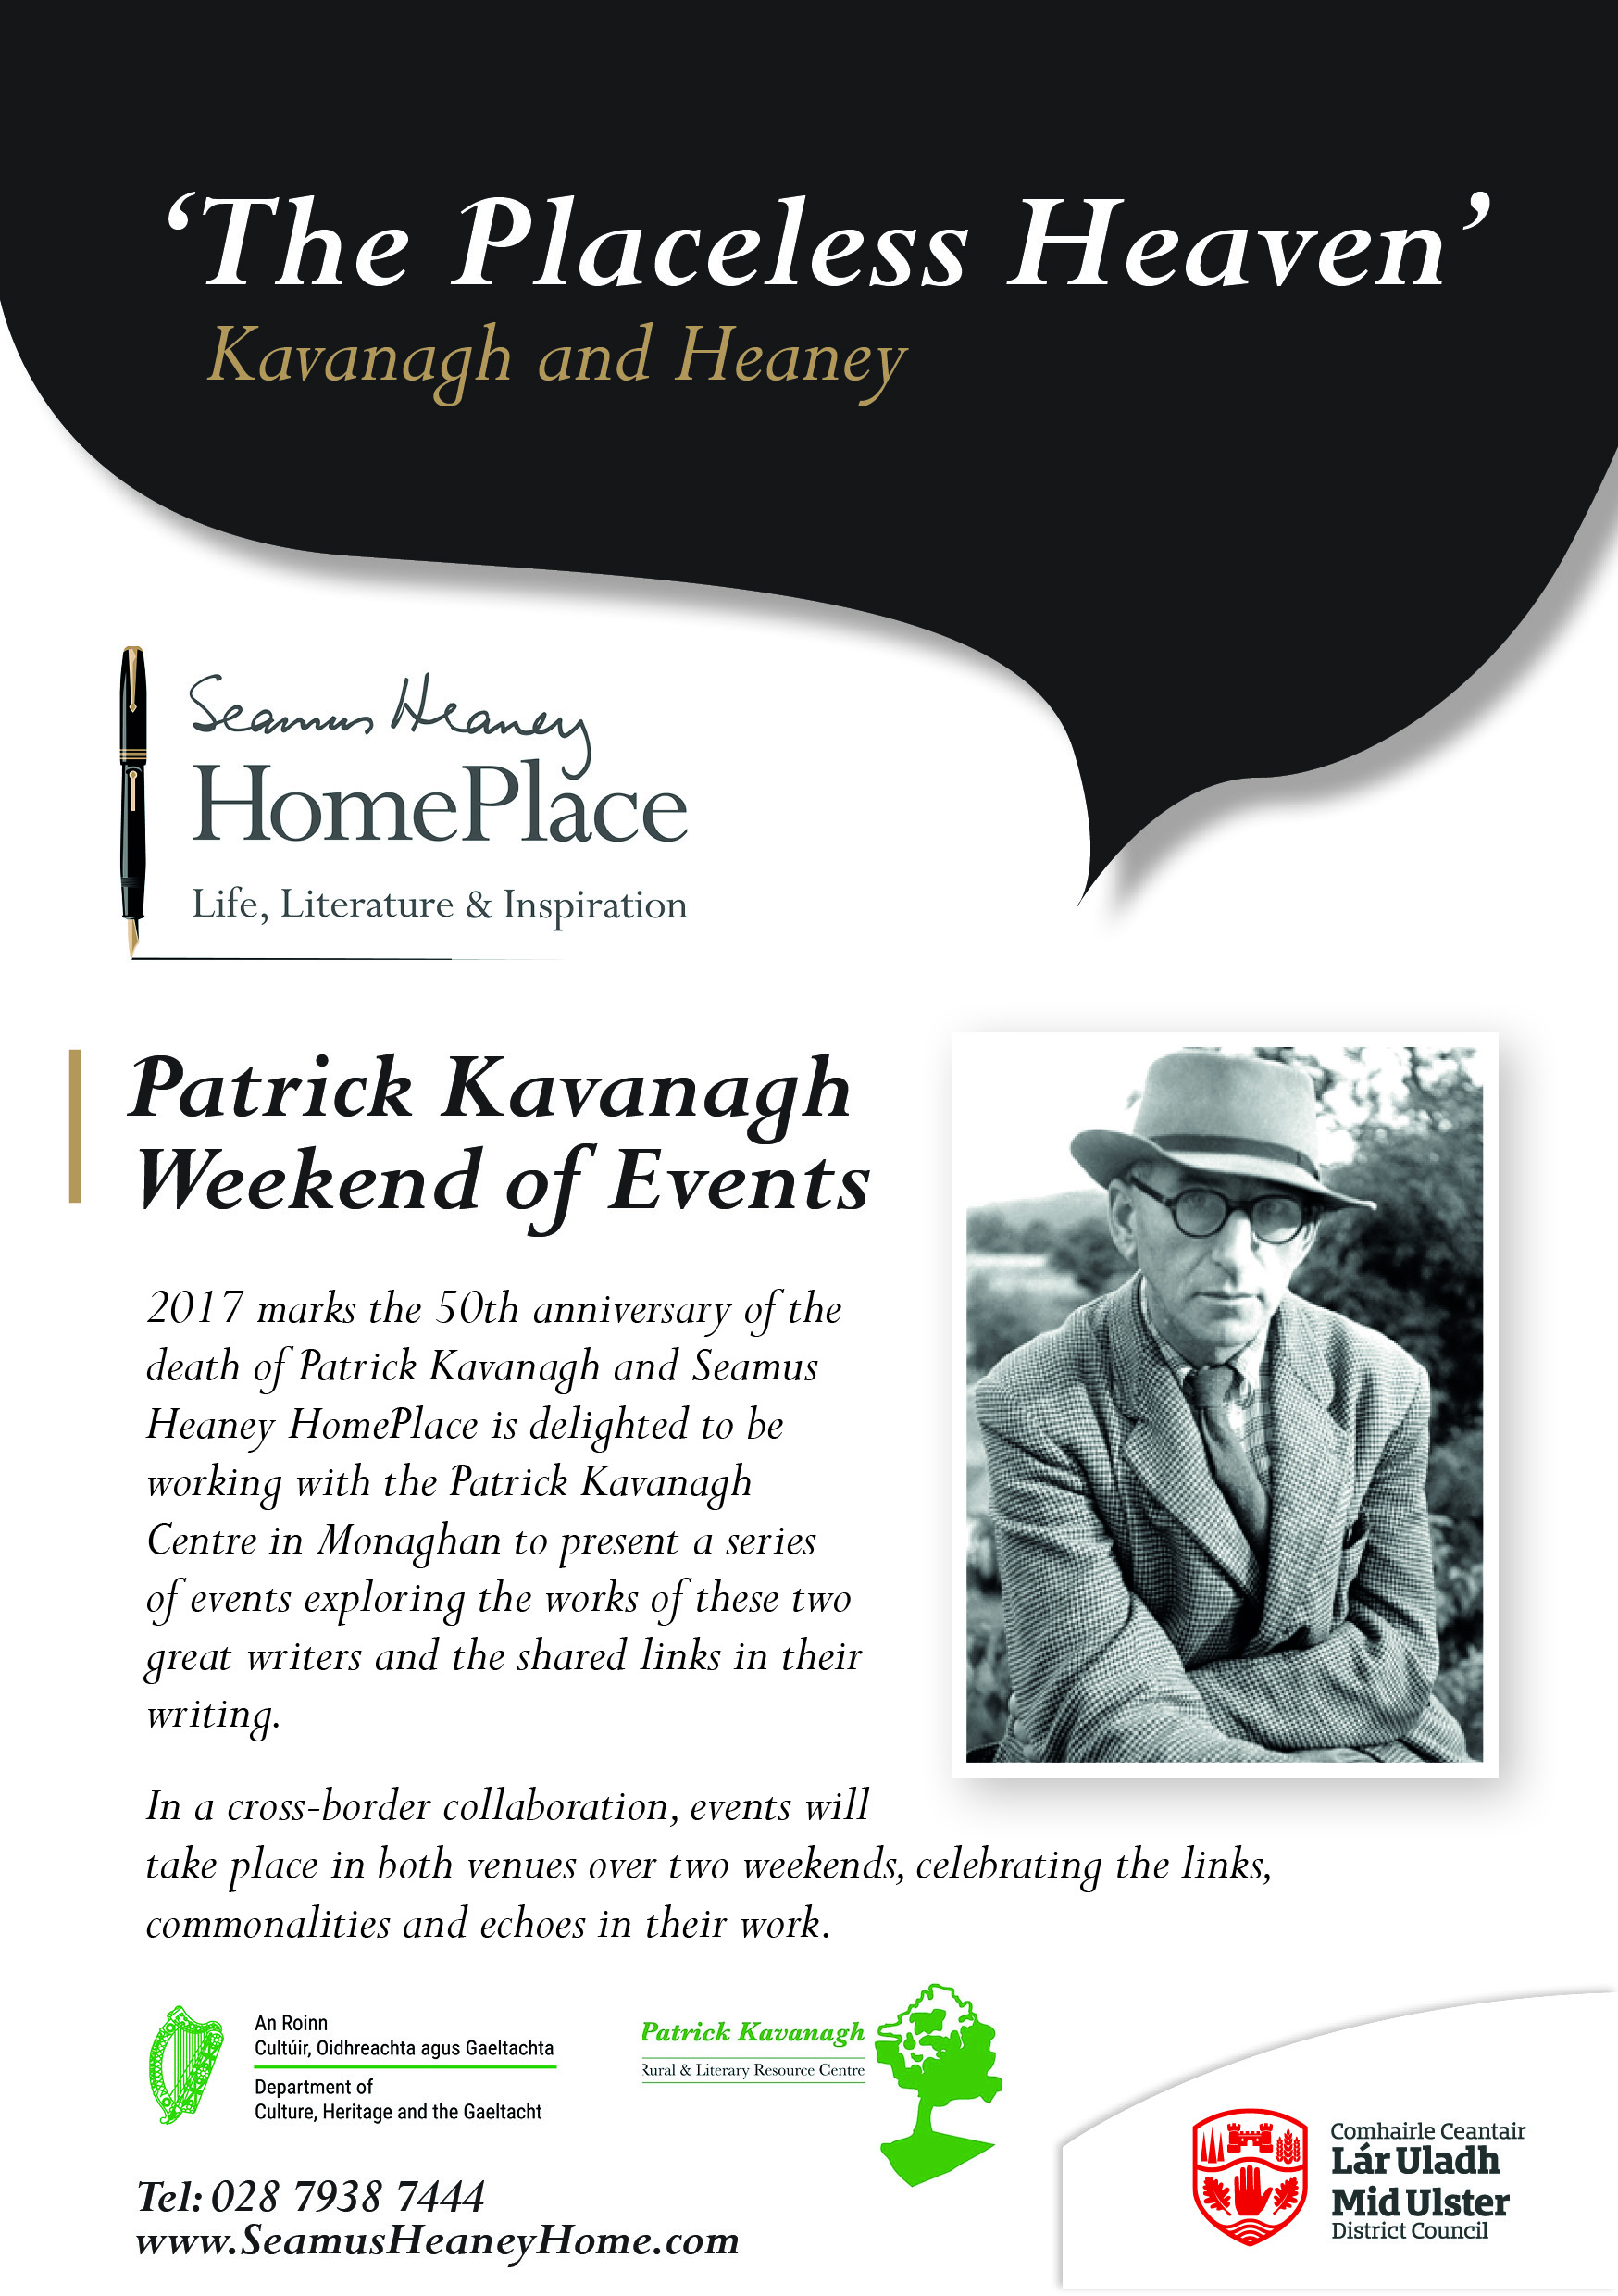 The Placesless Heaven – Kavanagh & Heaney